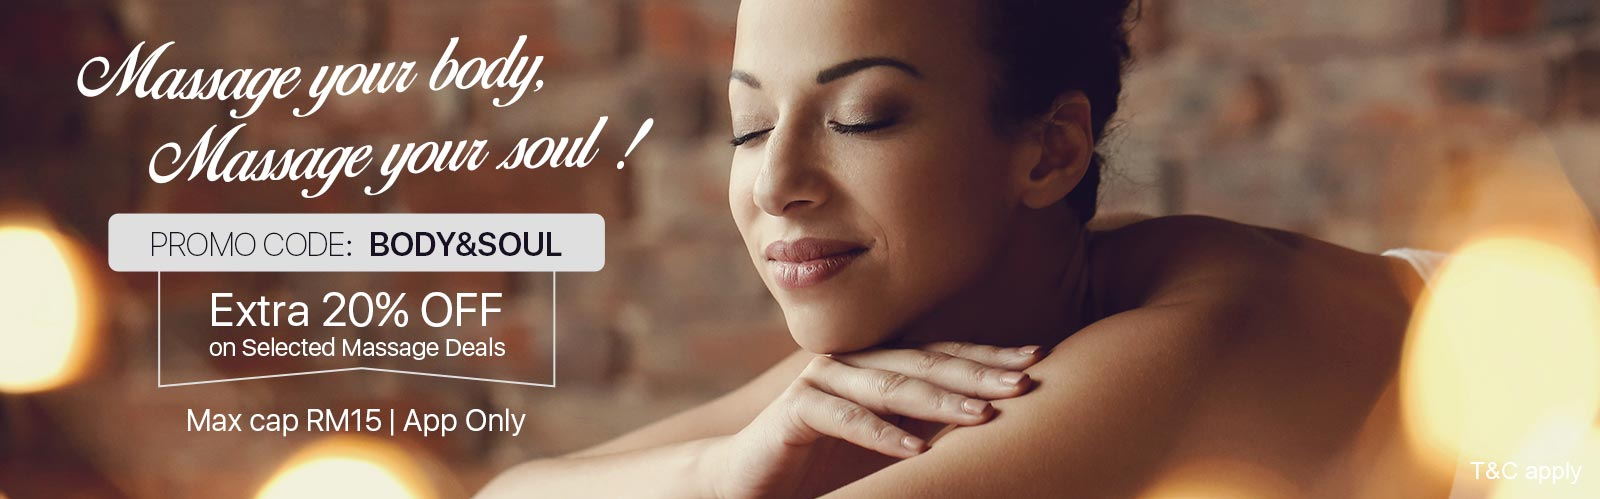 Massage your body, Massage your soul! Extra 20% OFF on selected